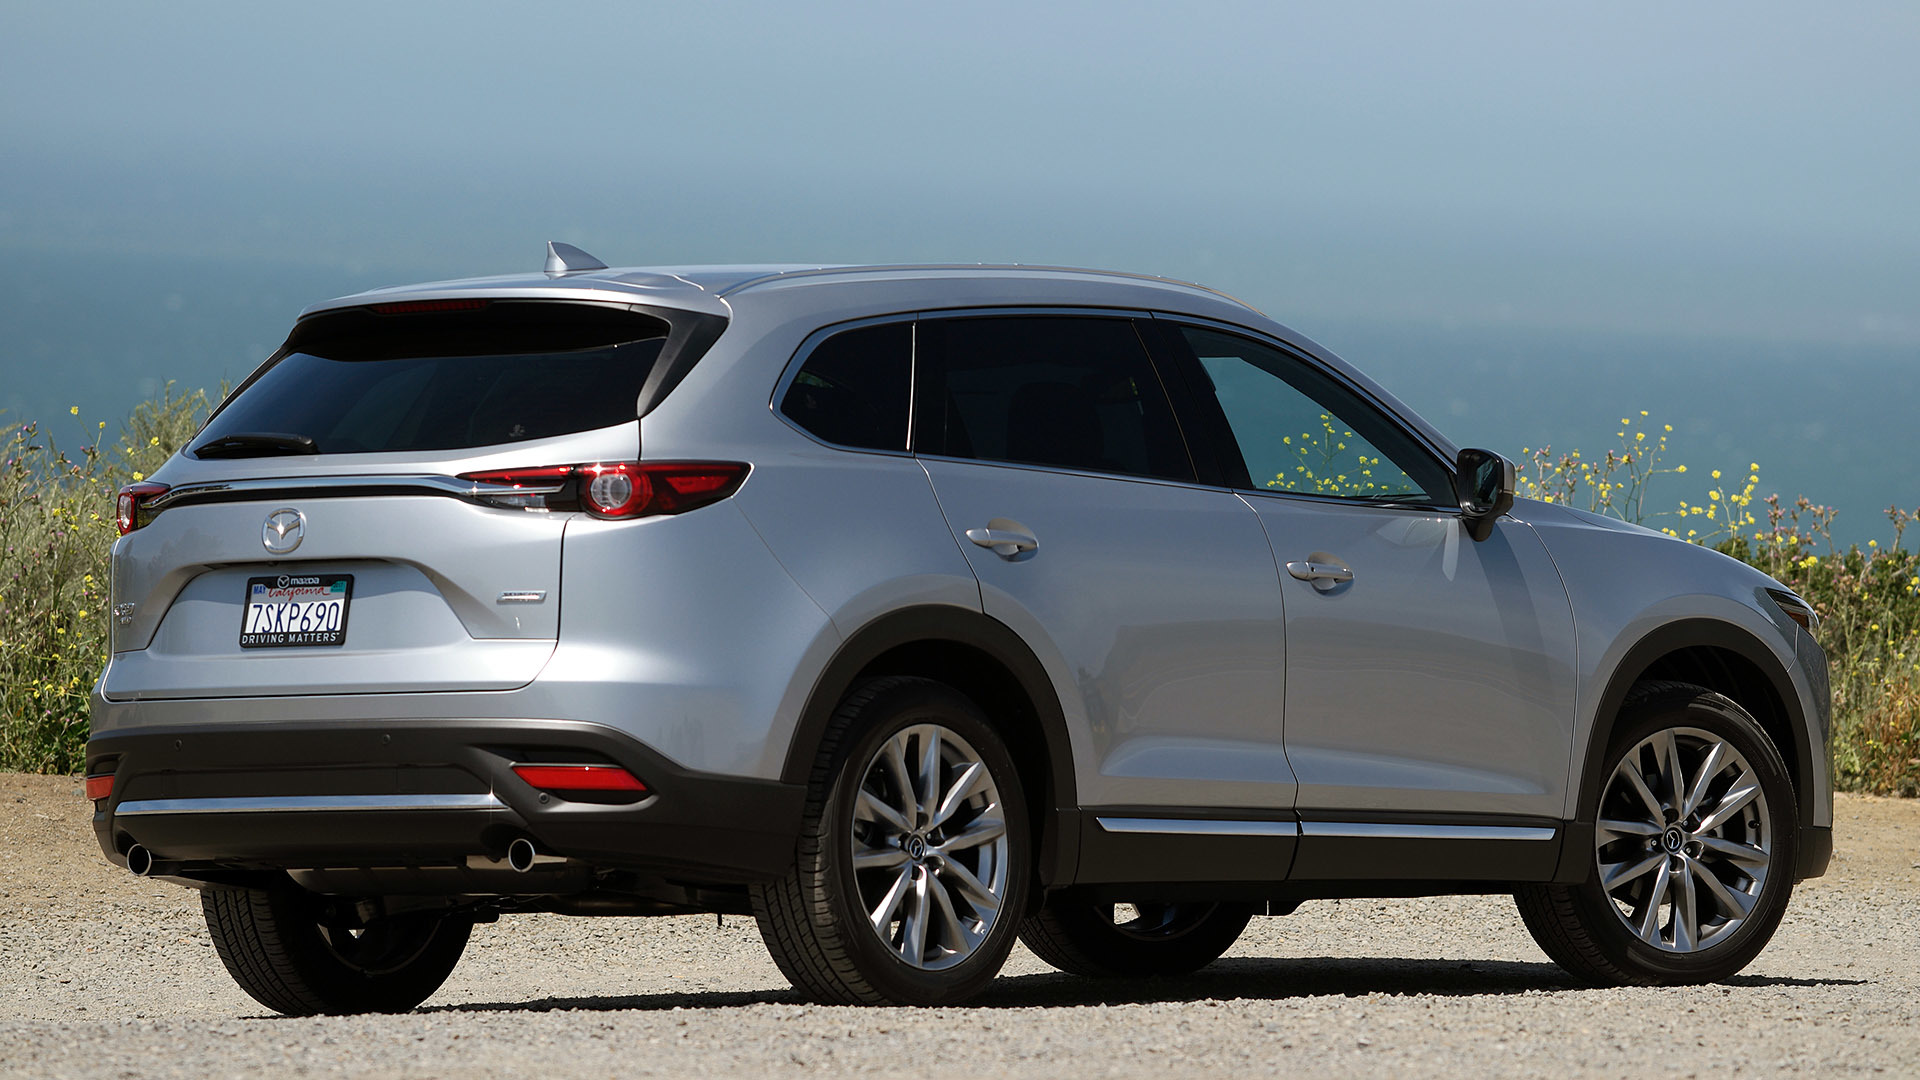 2016 mazda cx 9 officially revealed in la debuts with an all new skyactiv g 2. Black Bedroom Furniture Sets. Home Design Ideas